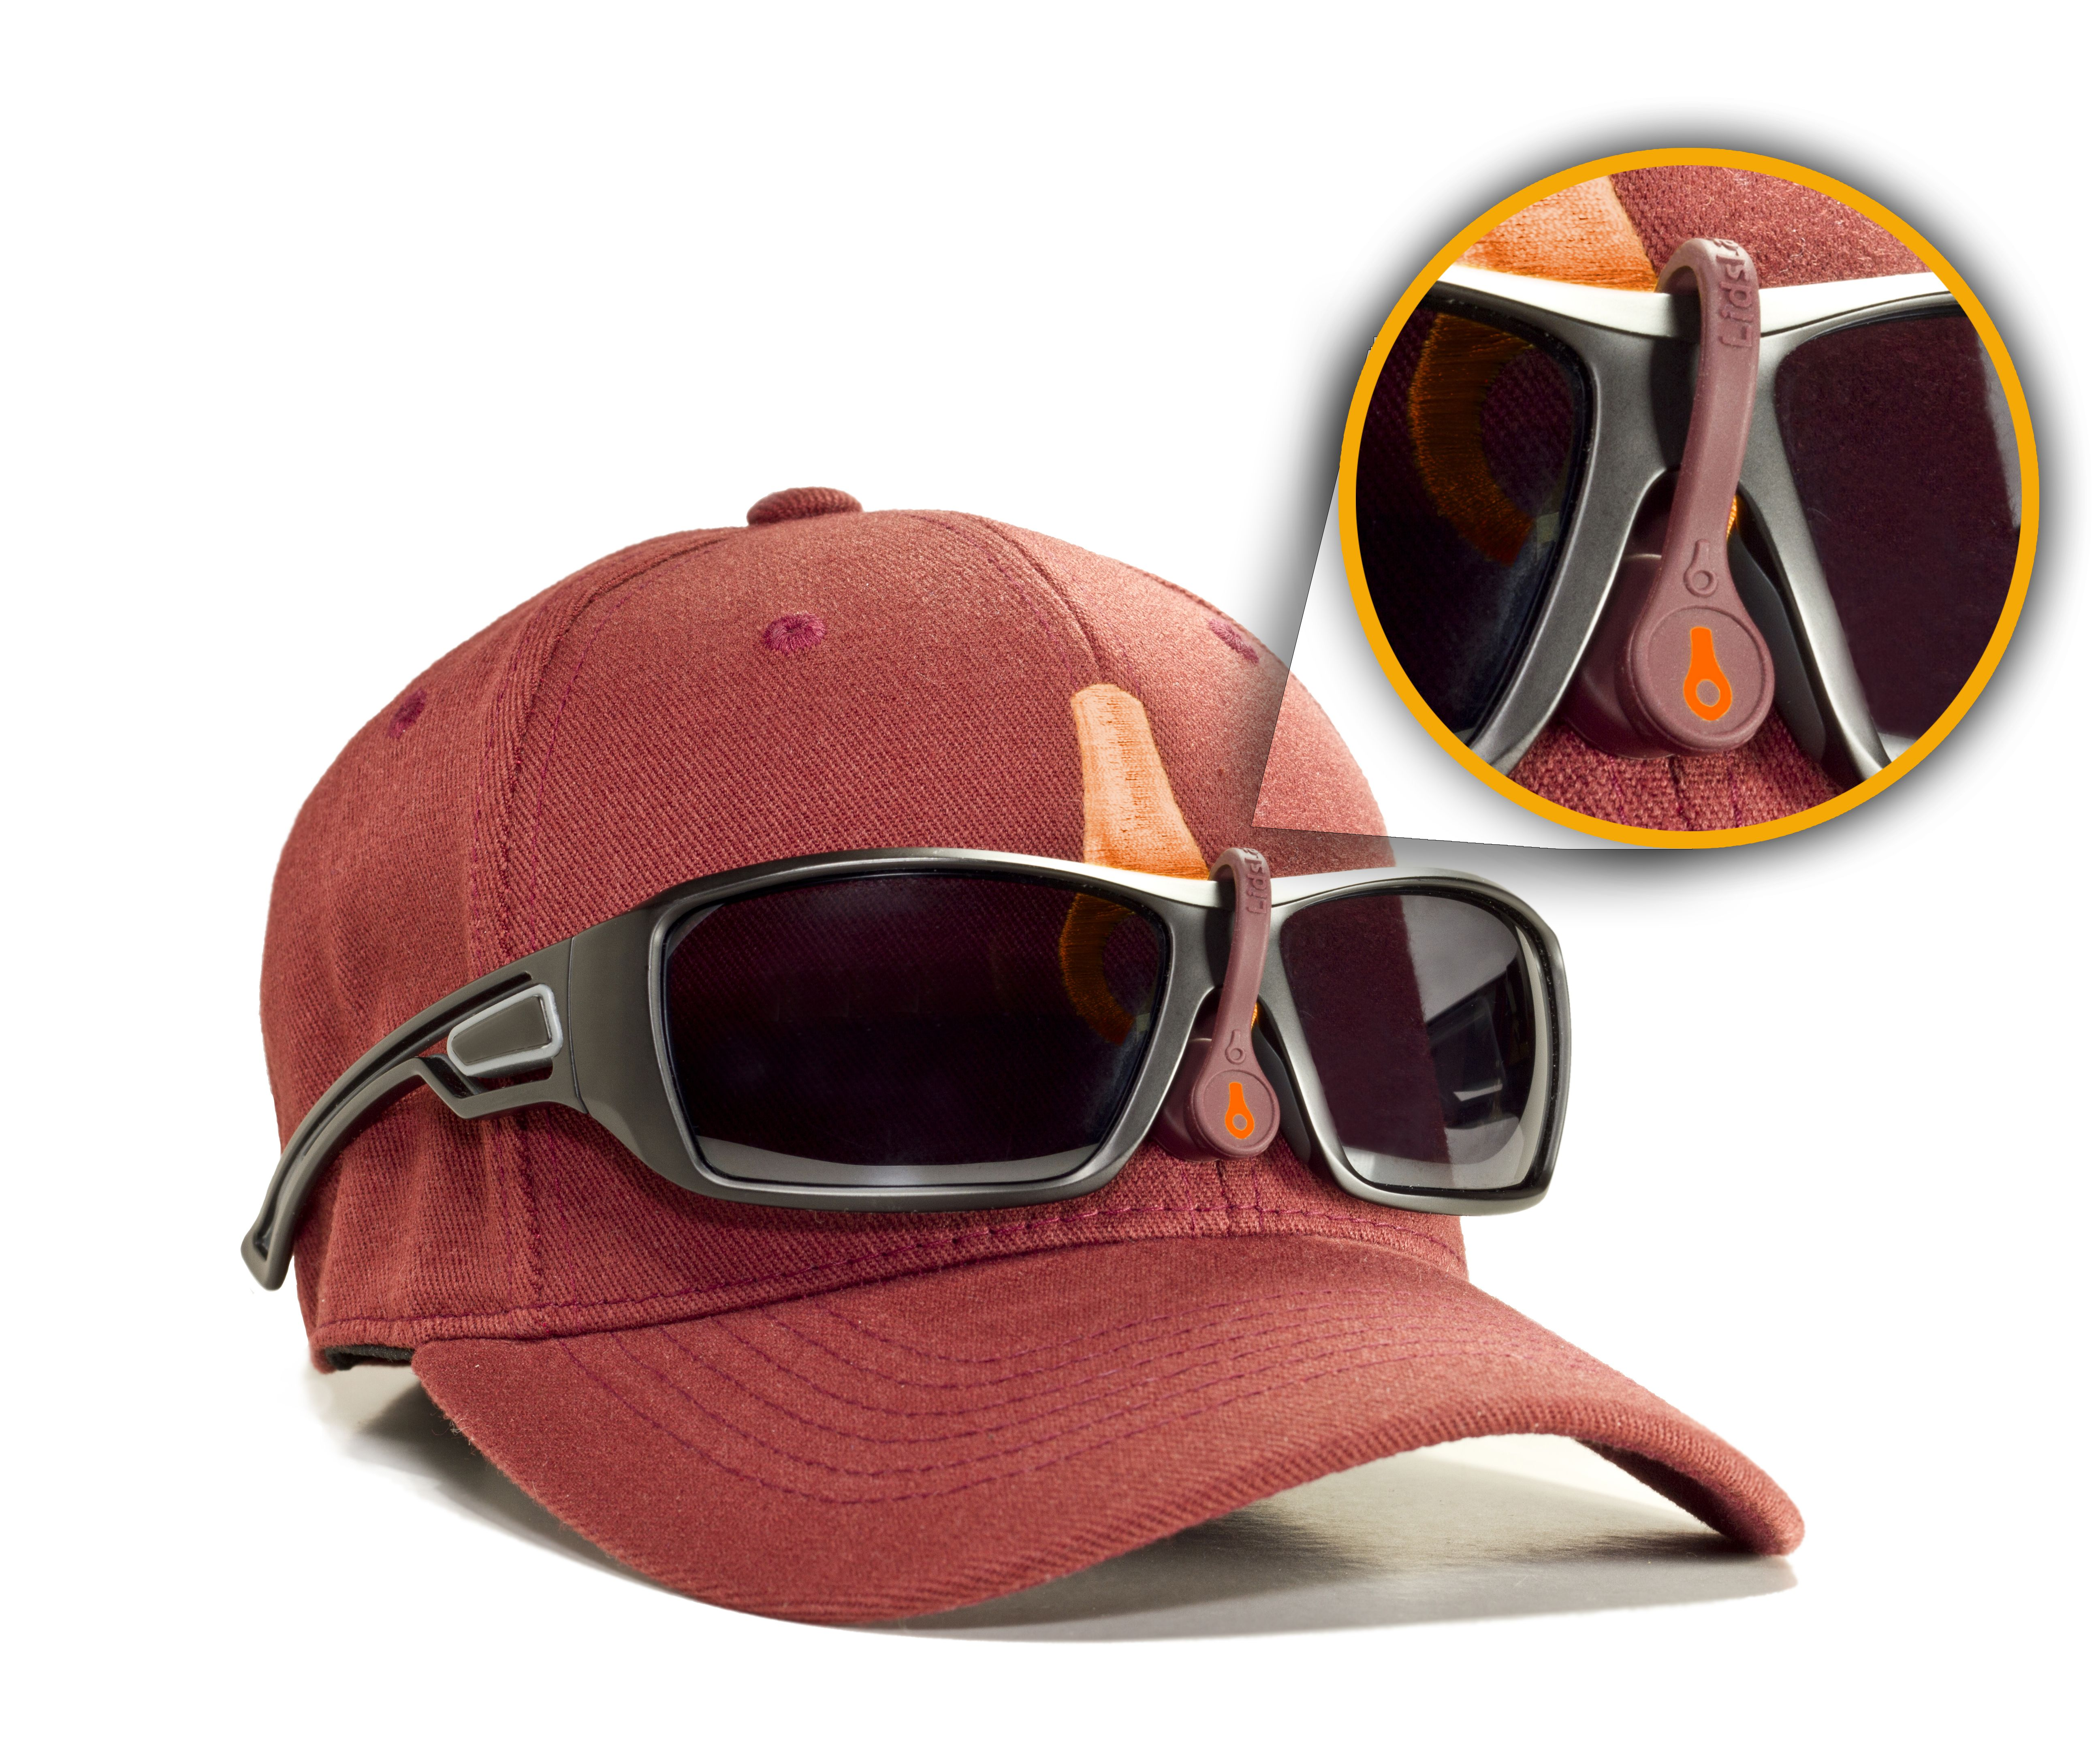 New Patent Pending Eyewear Retainer Used With Hats Secure Your Shades To Your Hat And Stop Using Those Sil Sunglasses Strap Eyewear Retainers Sunglass Holder